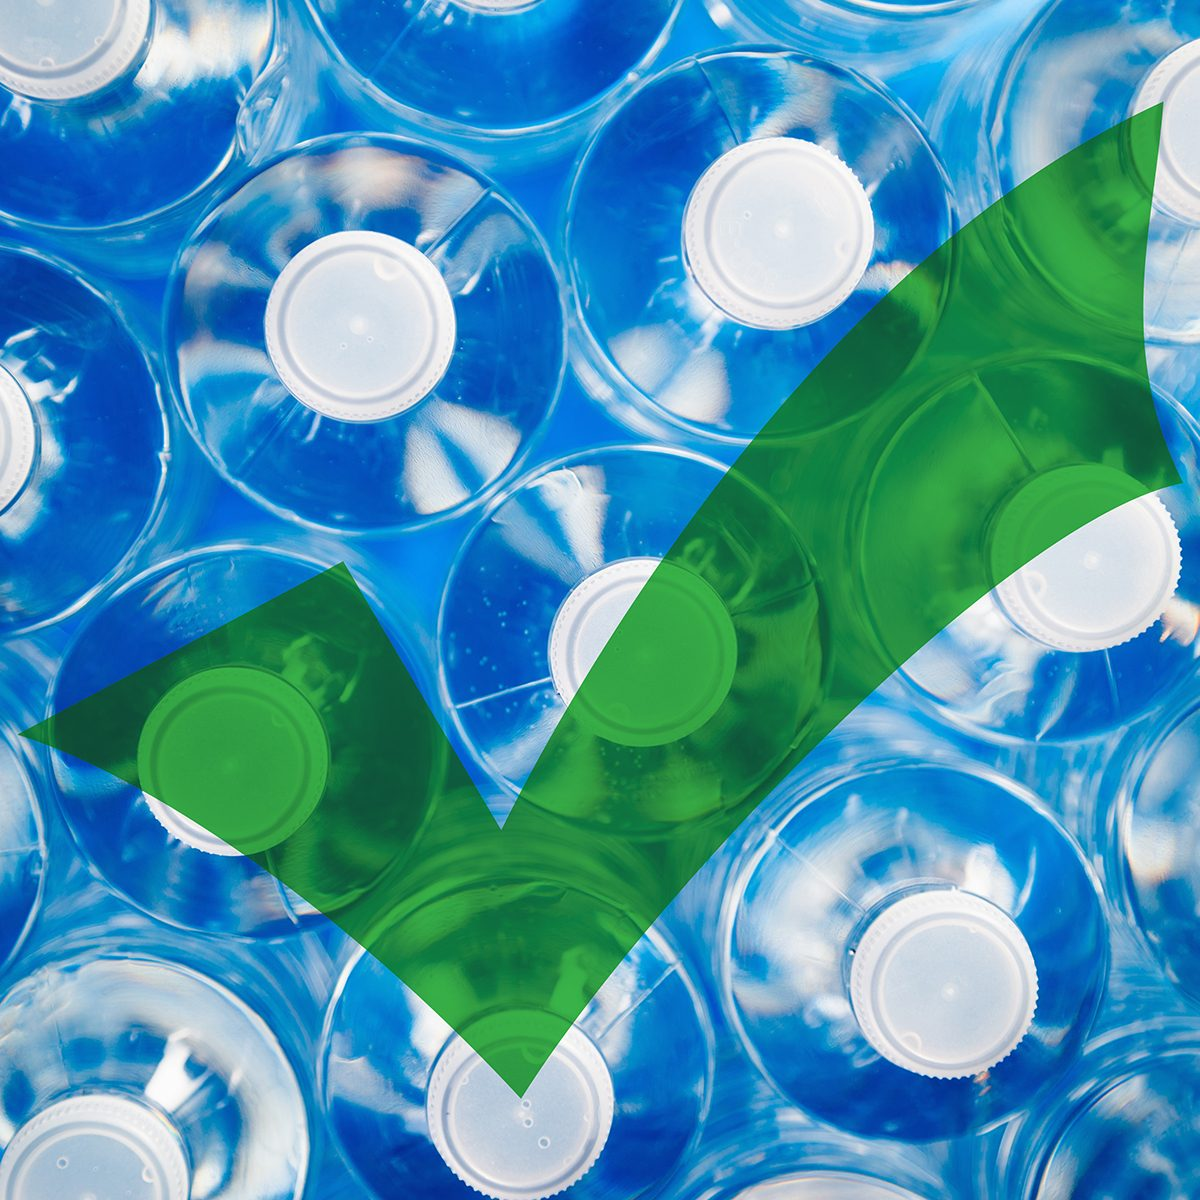 Top view of water bottles with a green check mark